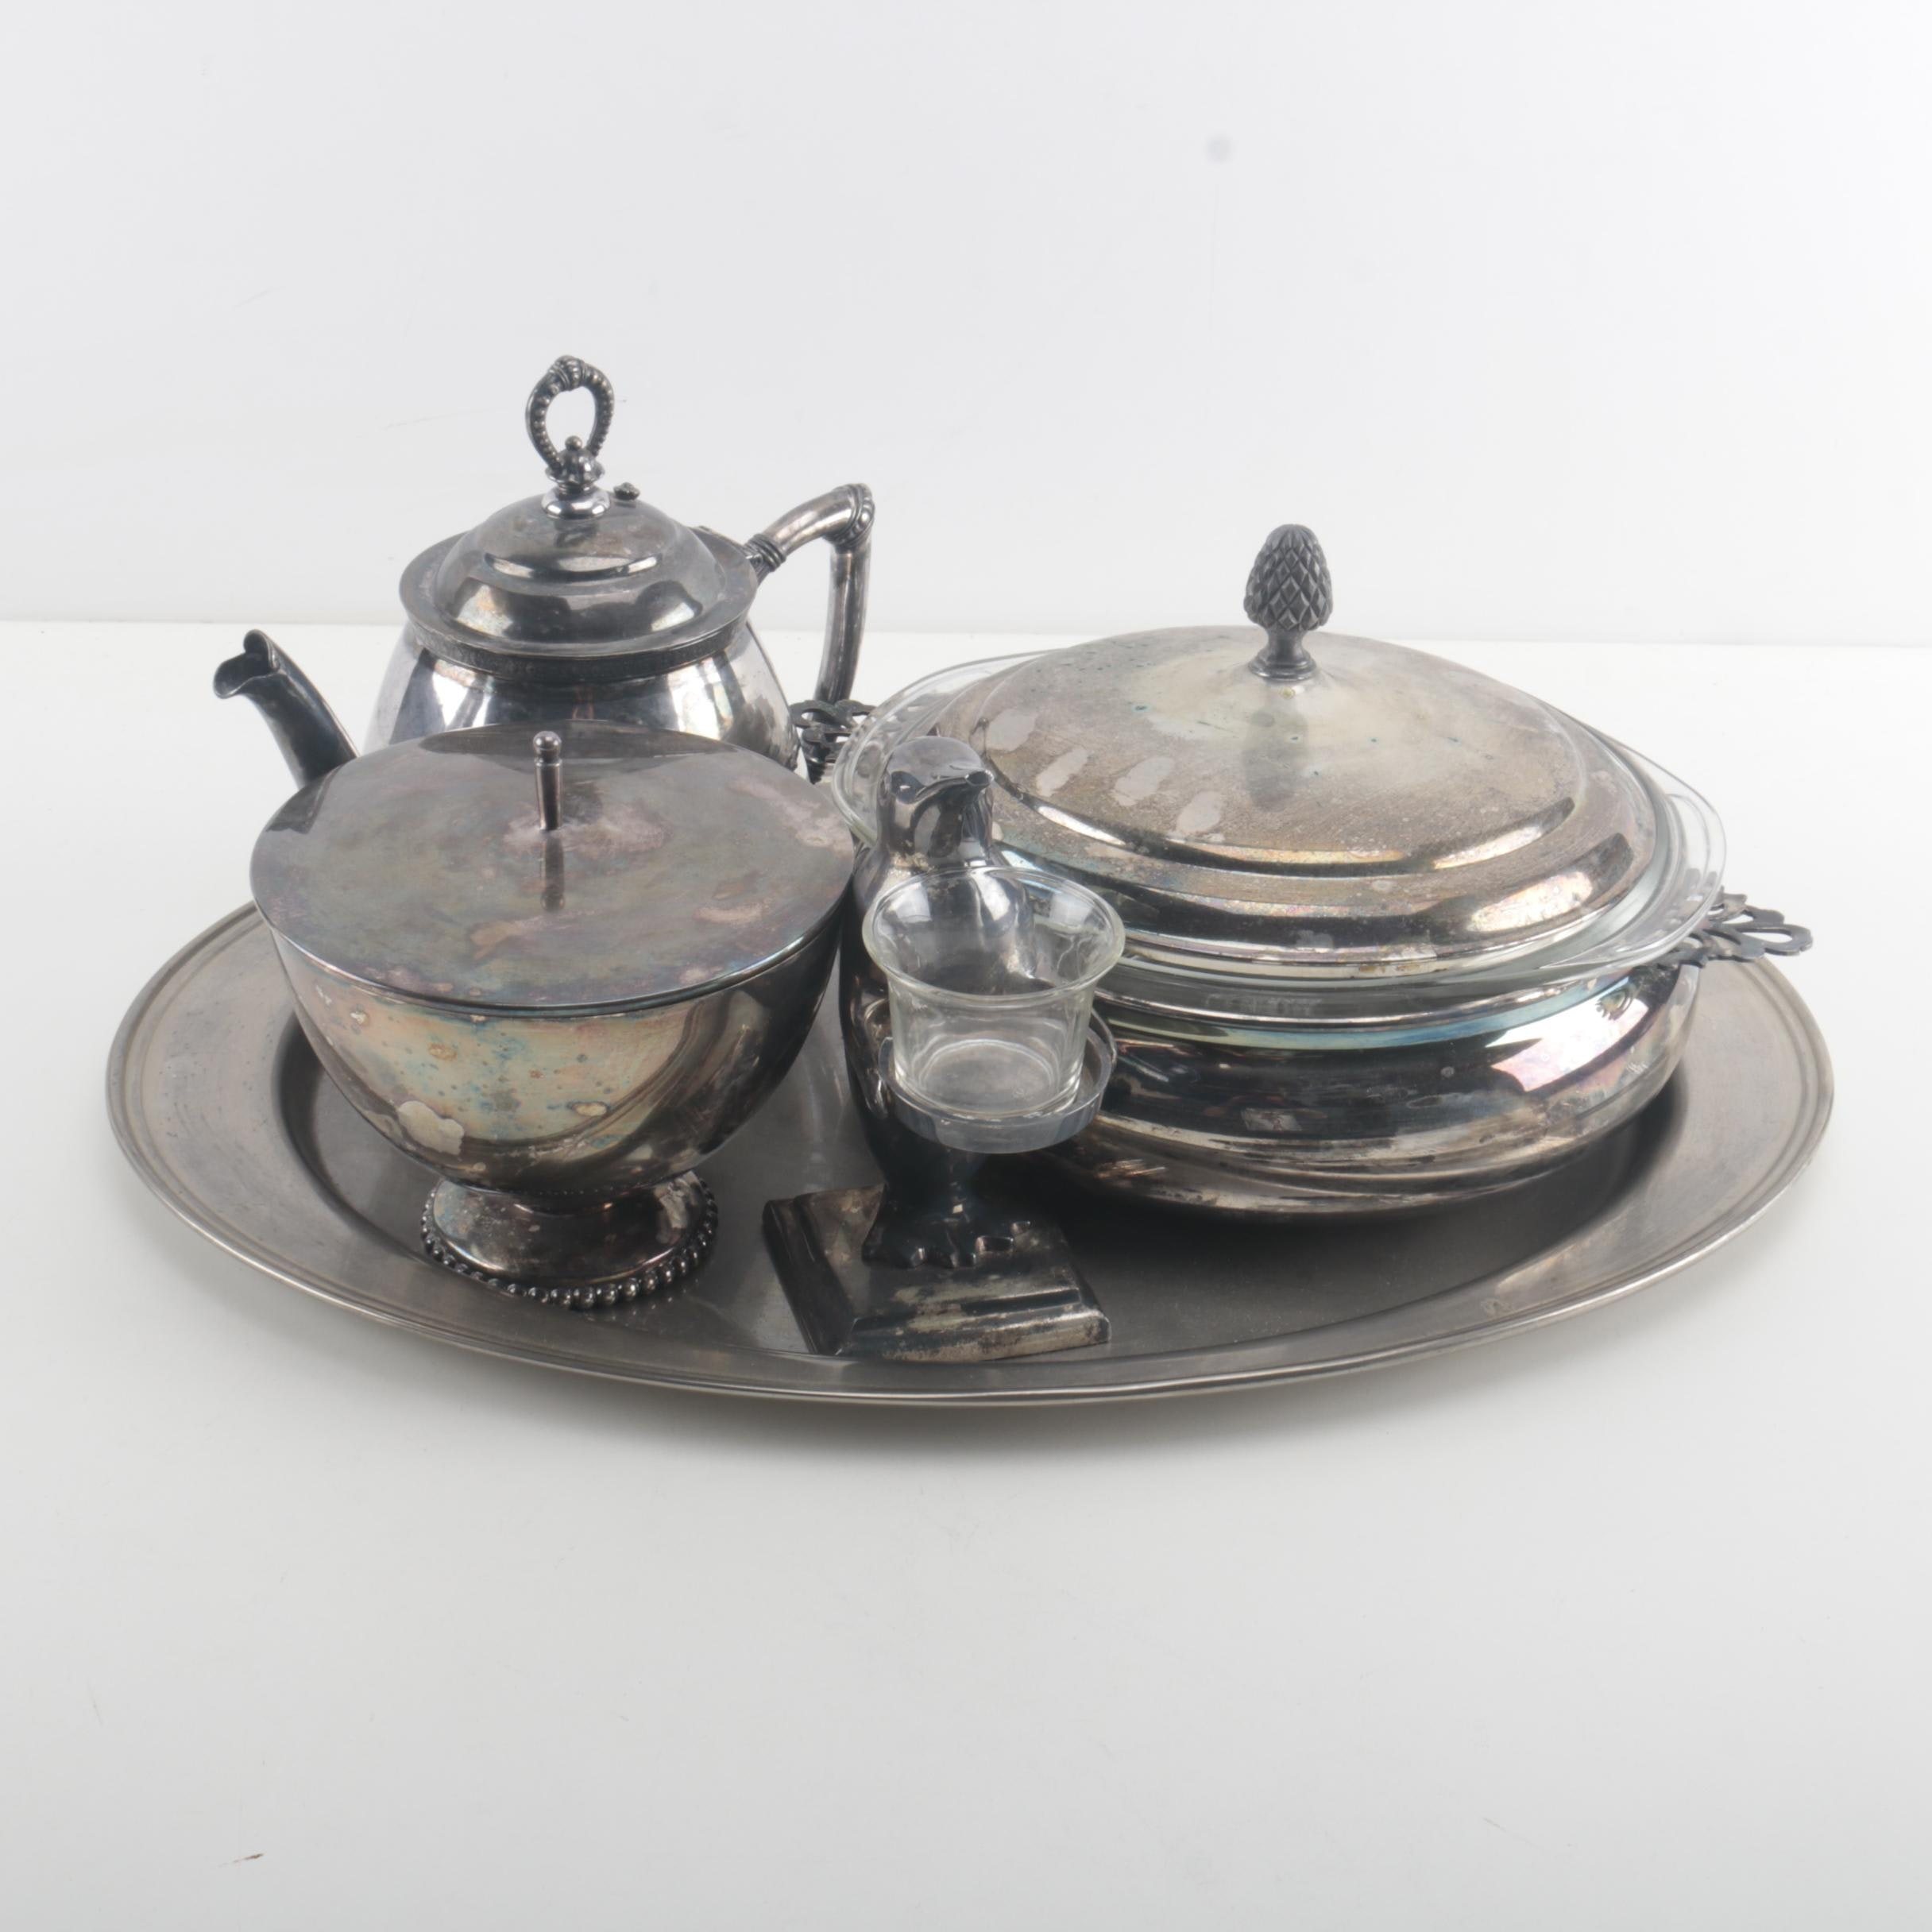 Assortment of Silver Plate Servingware Featuring Reed & Barton